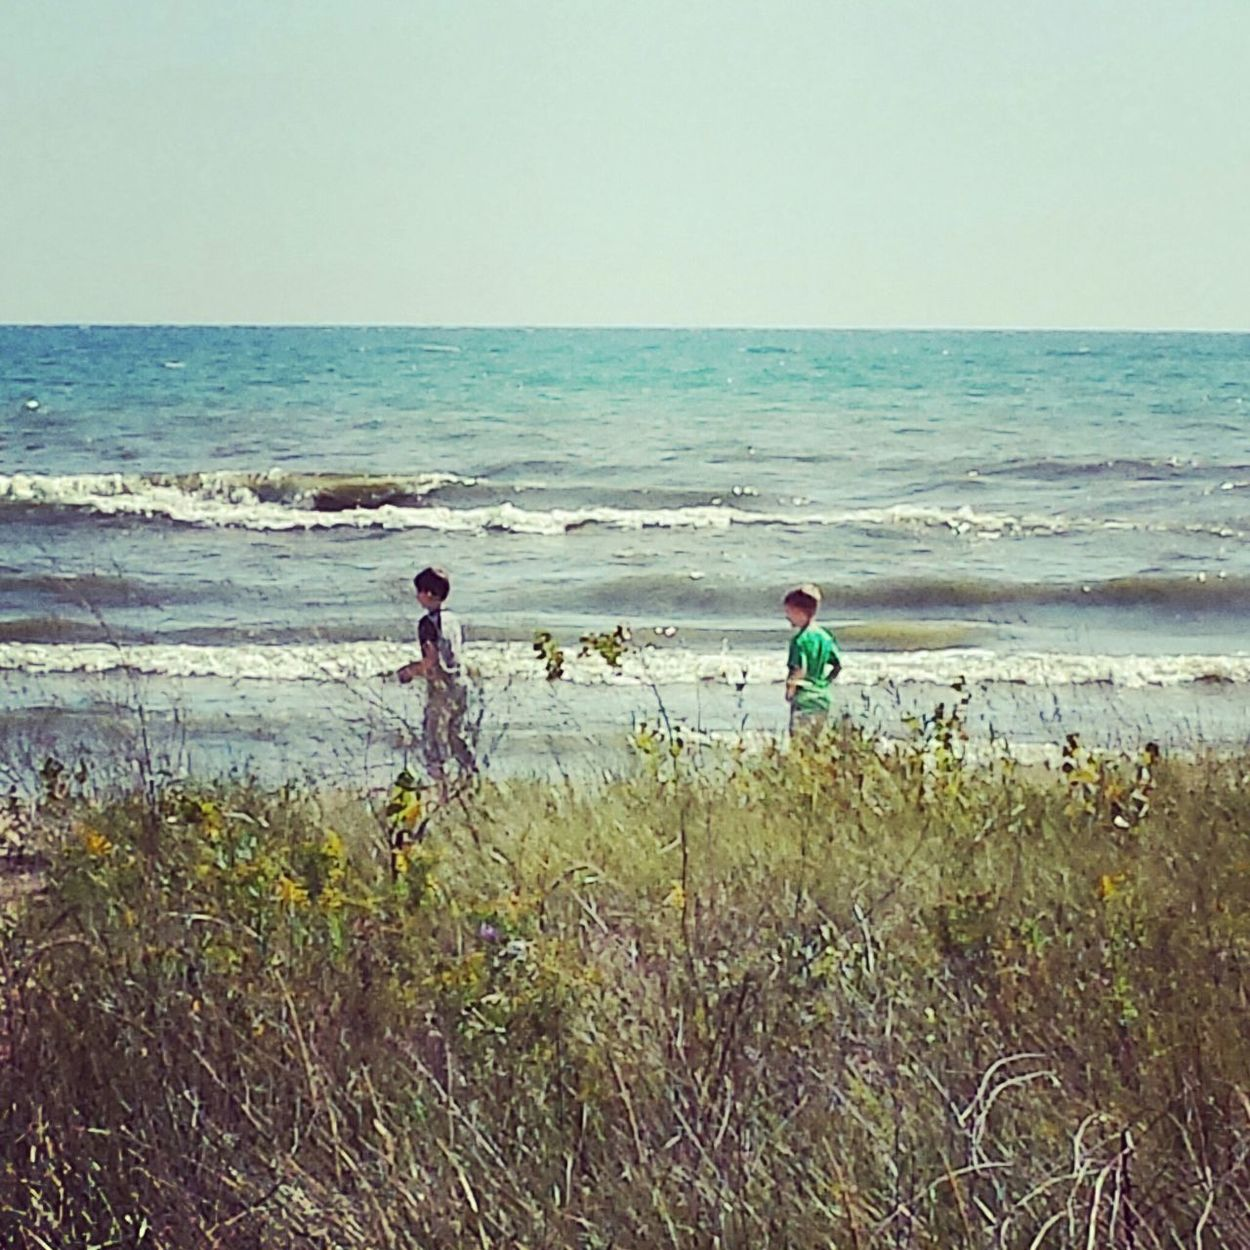 Boys, brothers, best buds, exploring beach on Lake Michigan Boys Brothers Best Friends Dunes Lake Michigan Kohler-Andrae State Park Lakeshore Beach Water Waterfront Waves Waves Crashing Waves, Ocean, Nature Playing Running Boys Running Summer Summertime